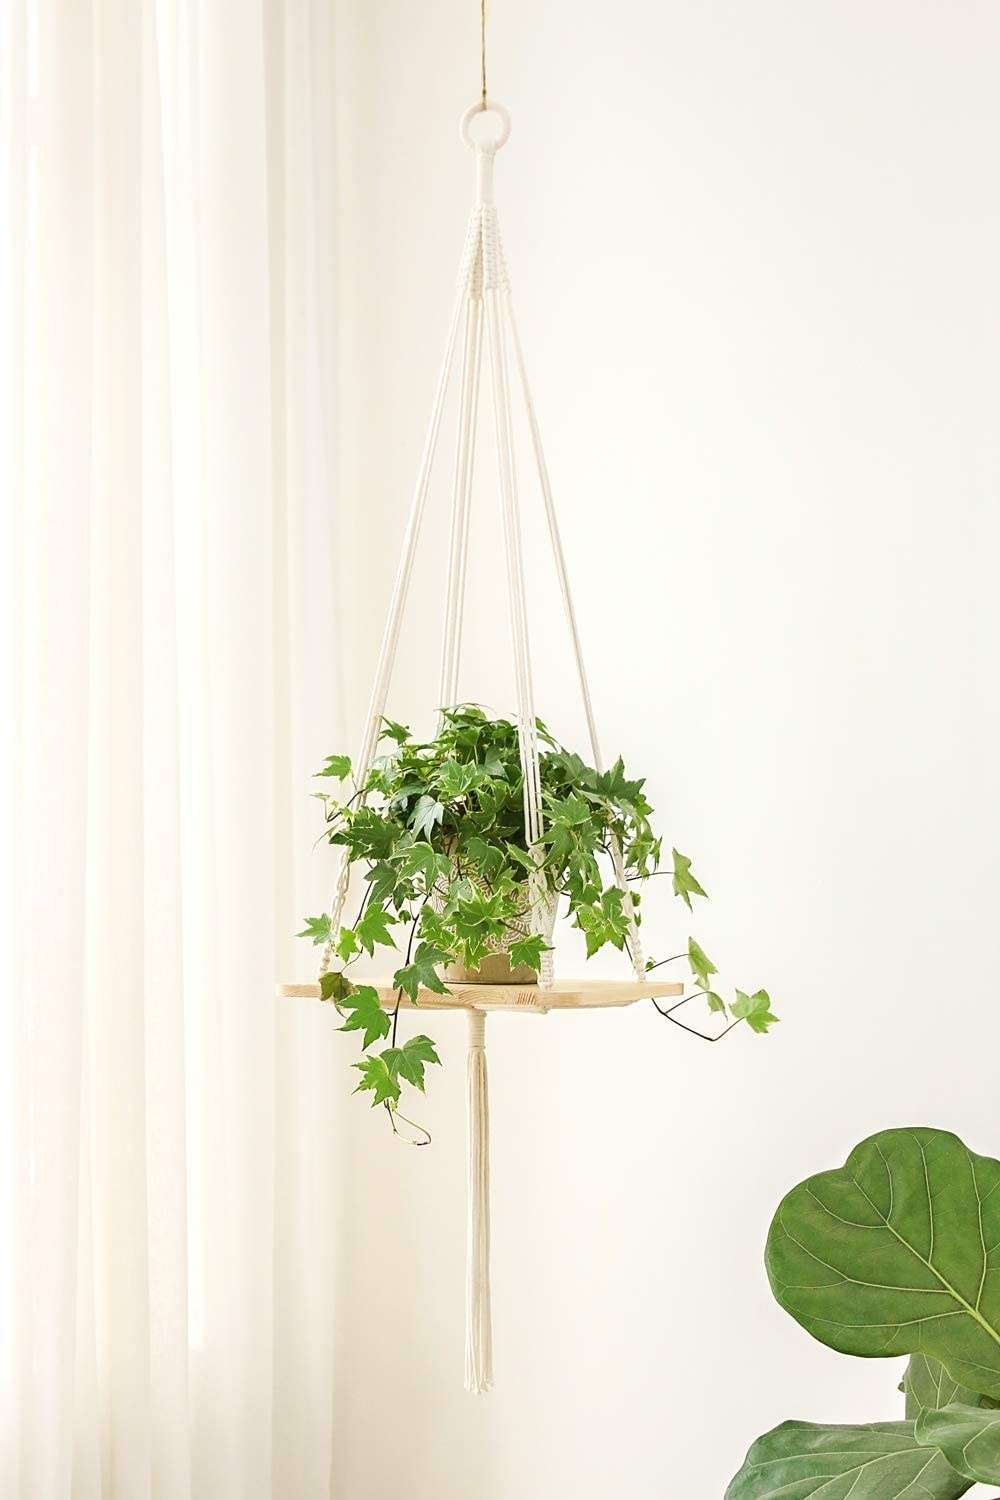 The platform planter with white thread